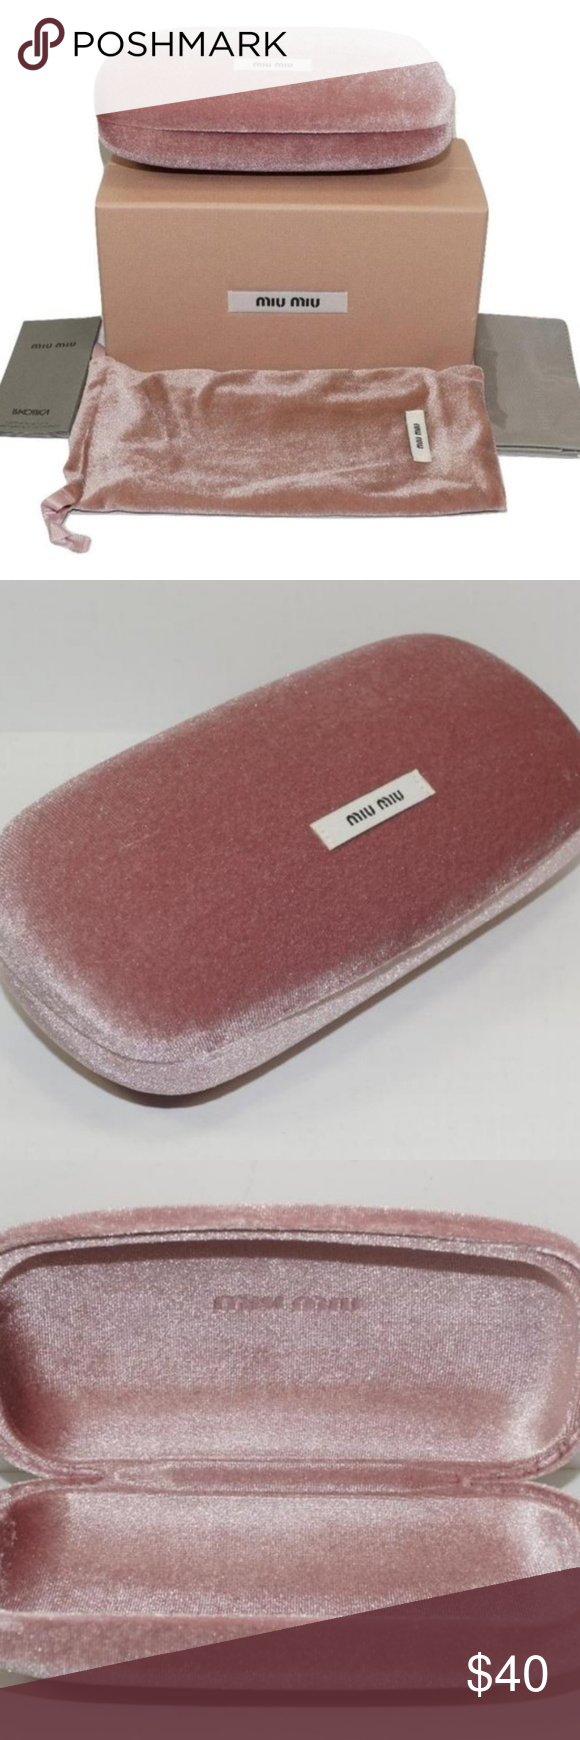 f1b5f67df87f Miu Miu Pink Velour ClamShell Hard Sunglasses Case Brand New 100% Authentic MIU  MIU SUNGLASSES